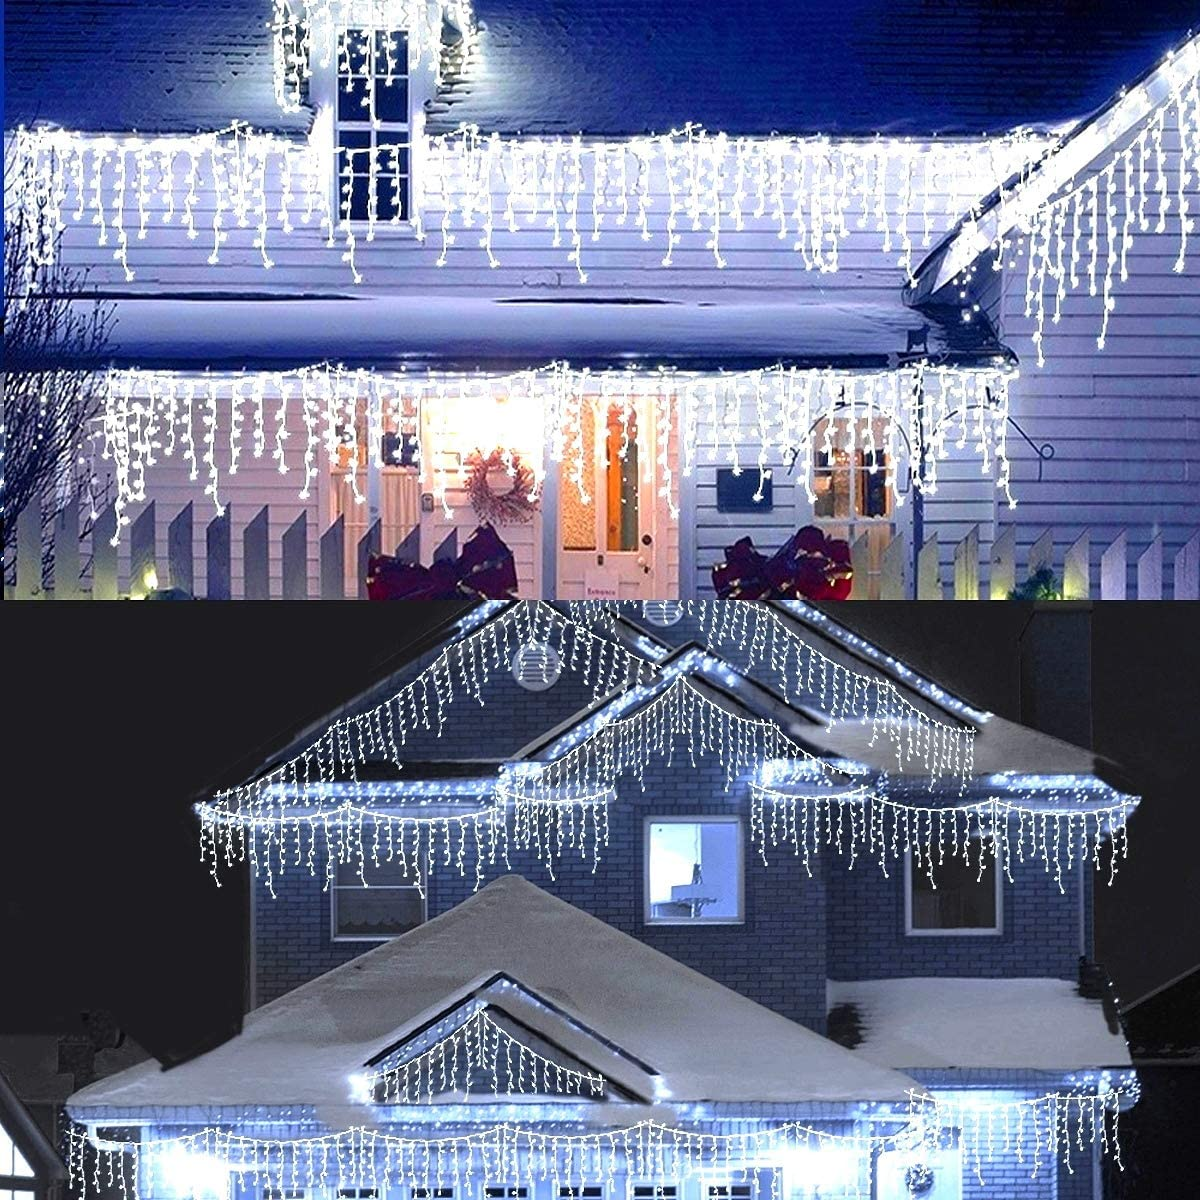 MAOYUE 29 ft 450 LED Christmas Decorations Outdoor Christmas Decorations Icicle Lights with Timer Christmas Lights Waterproof Cascading Lights for Outside Christmas Decor, Porch, Yard, White